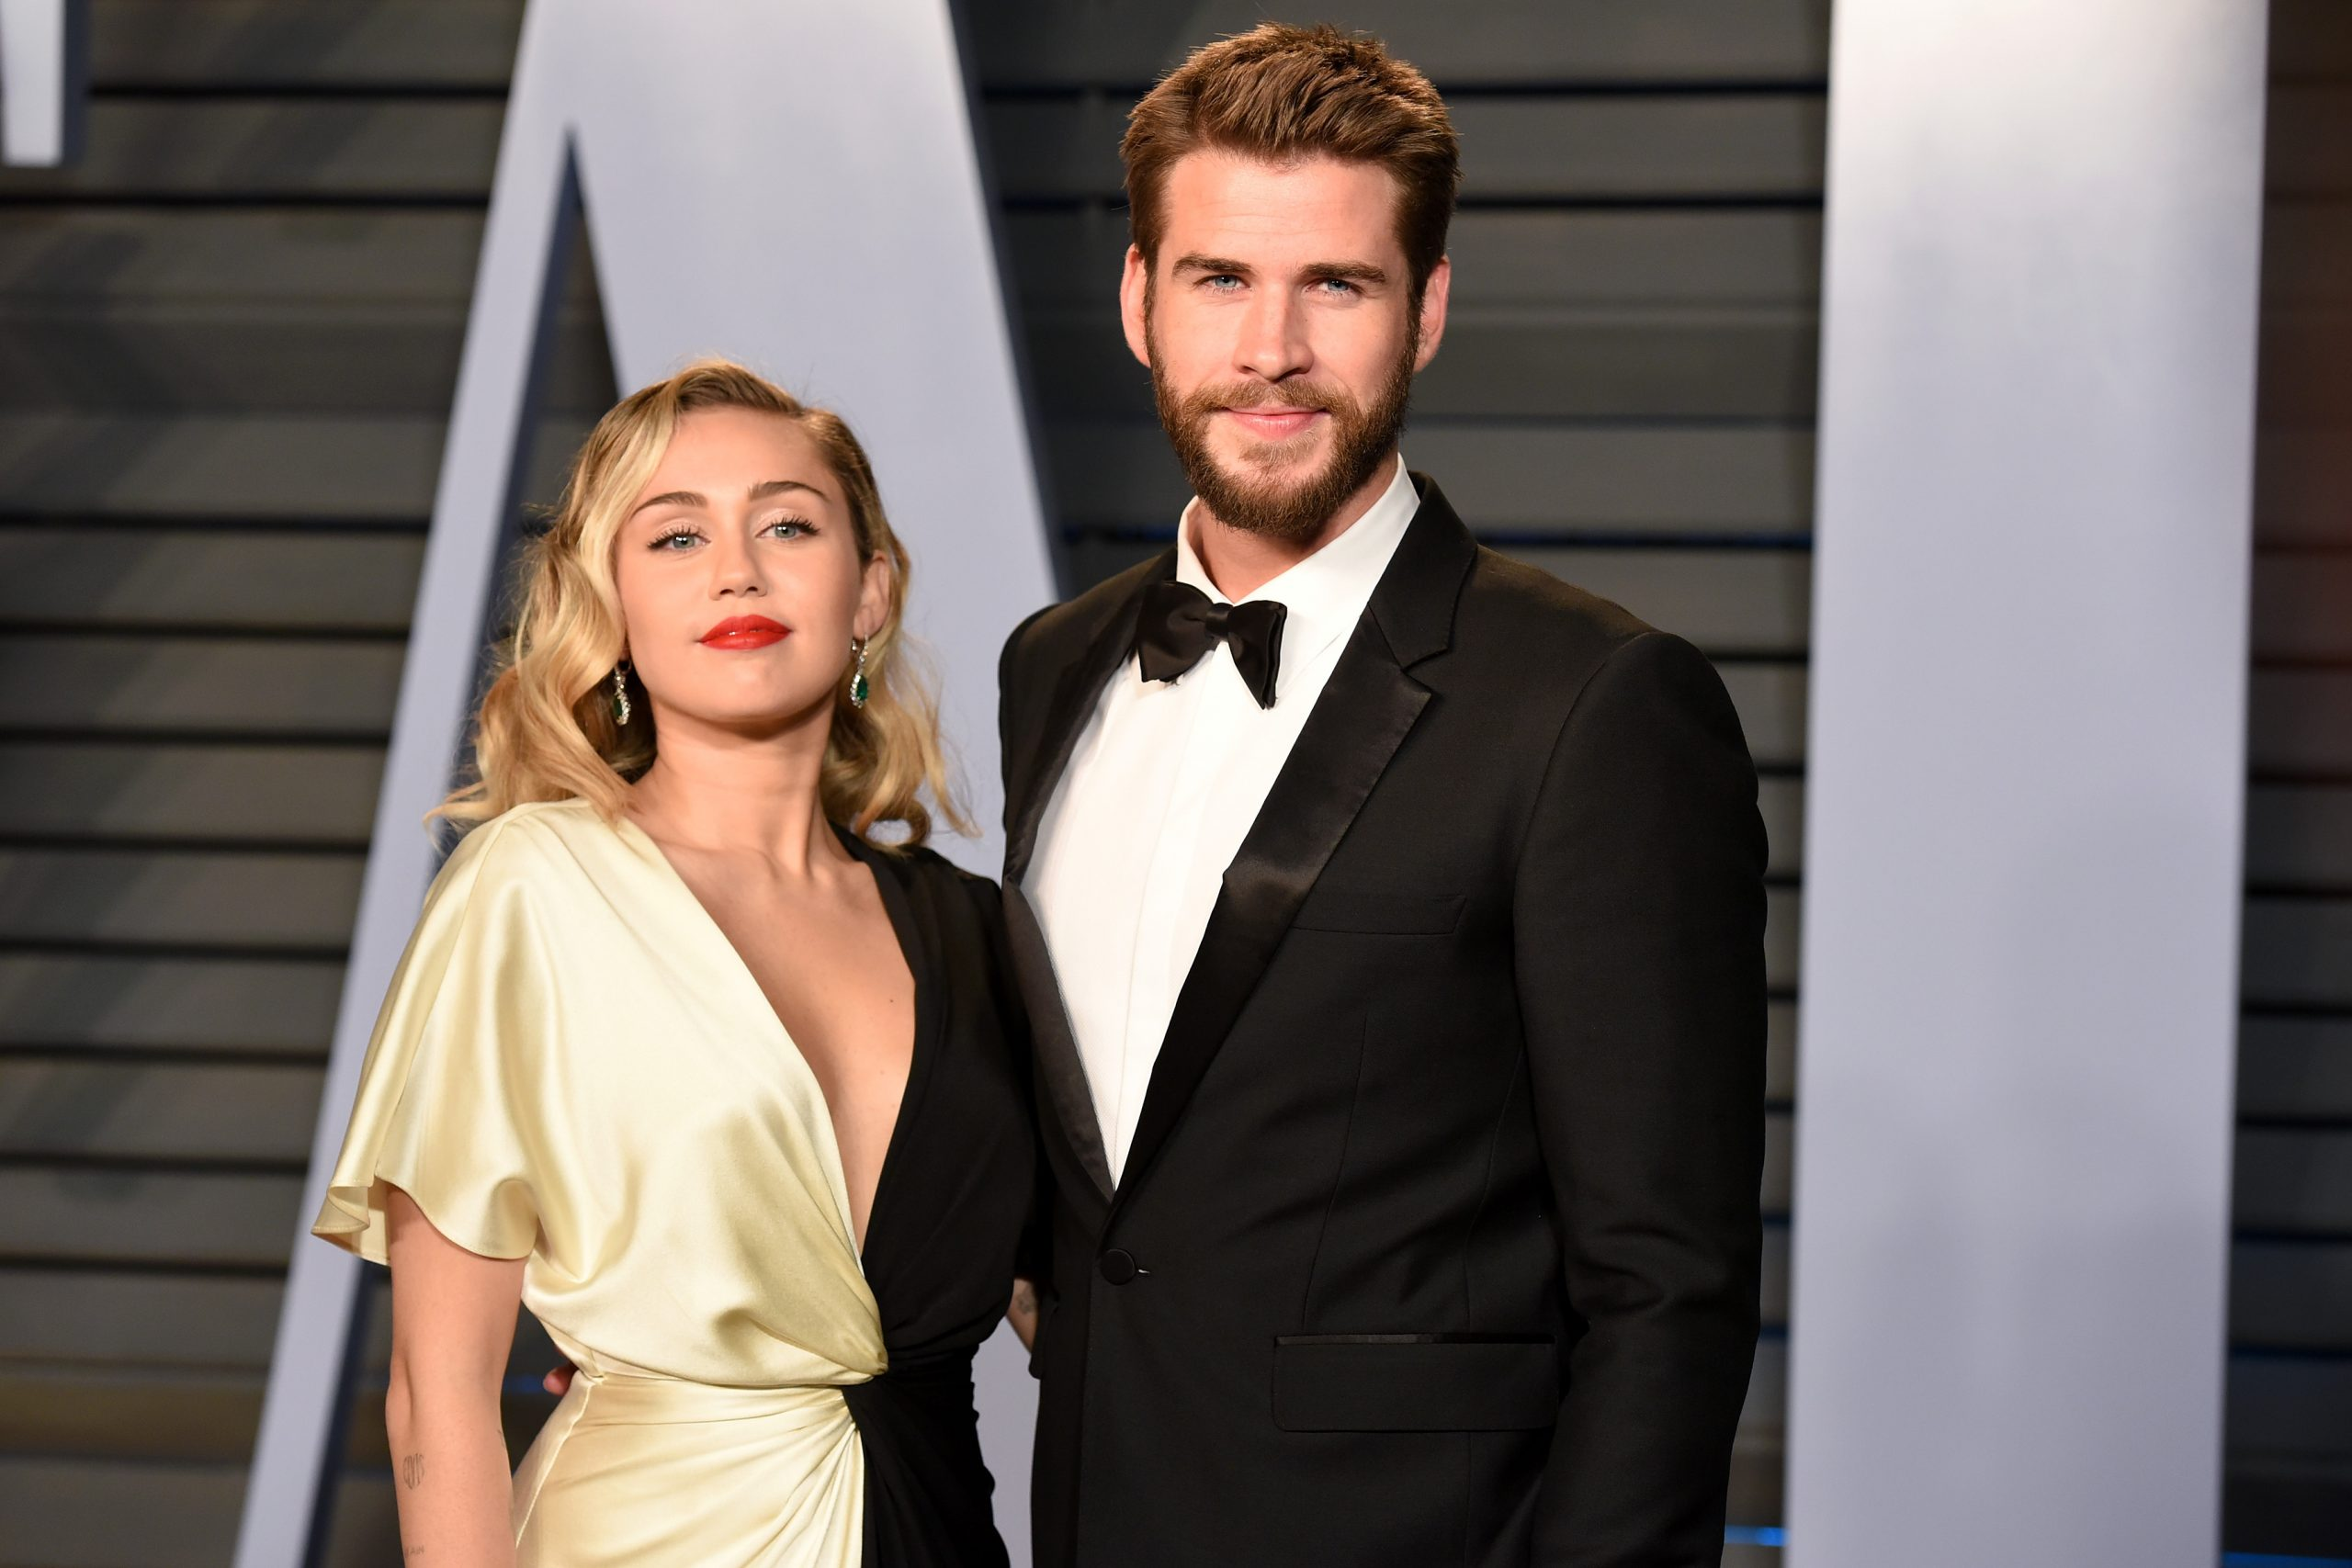 Miley Cyrus Most Popular Songs About Liam Hemsworth